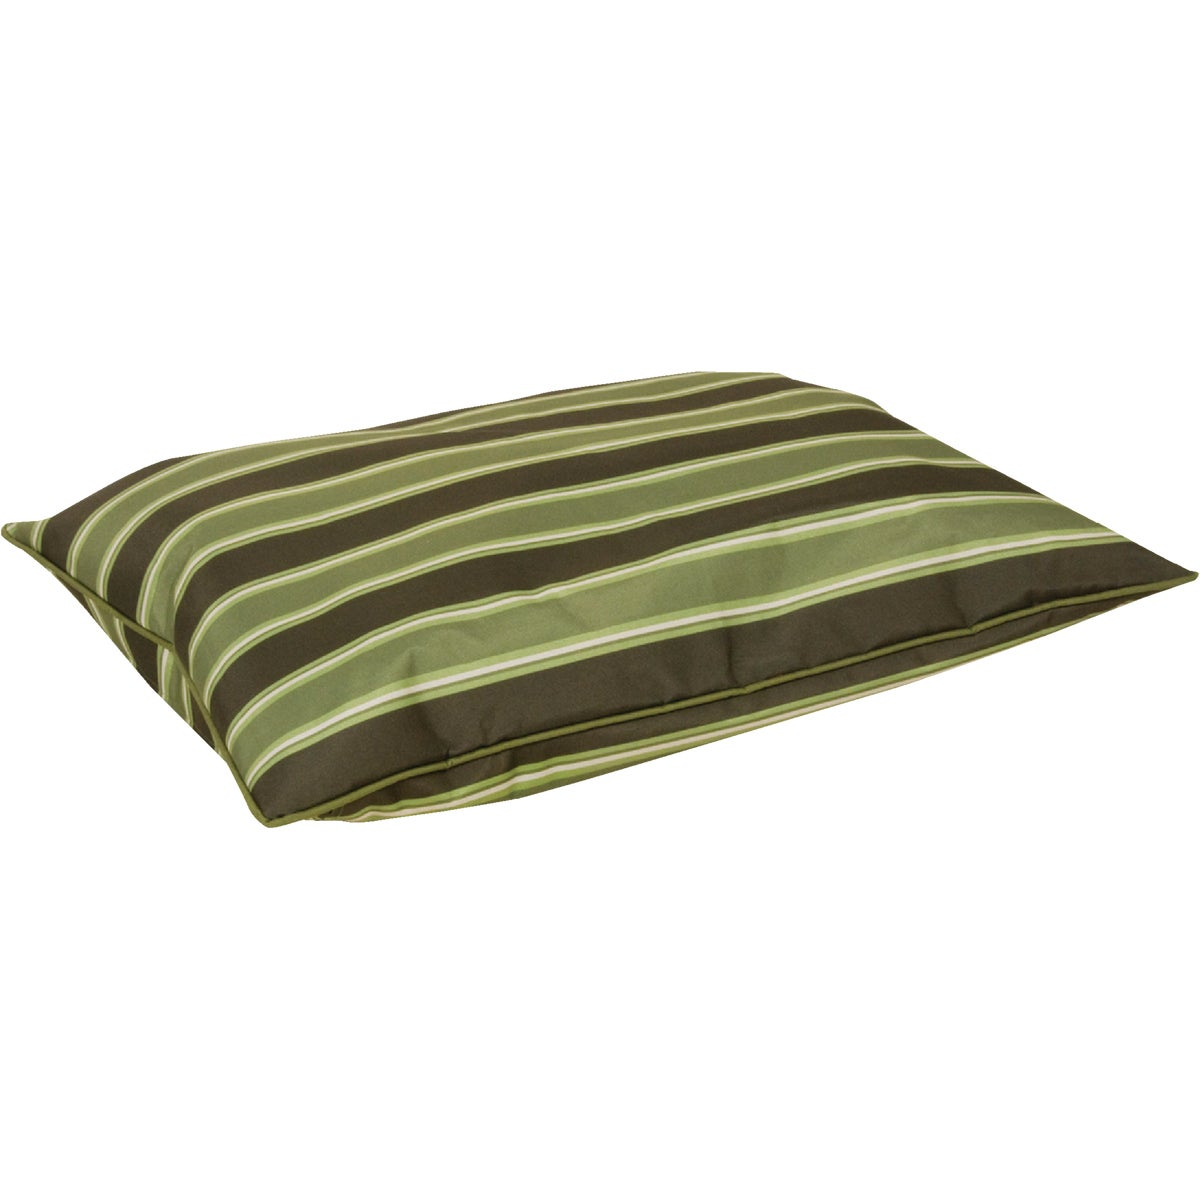 27X36 CHEW RESISTANT BED - 26548 by Petmate Doskocil